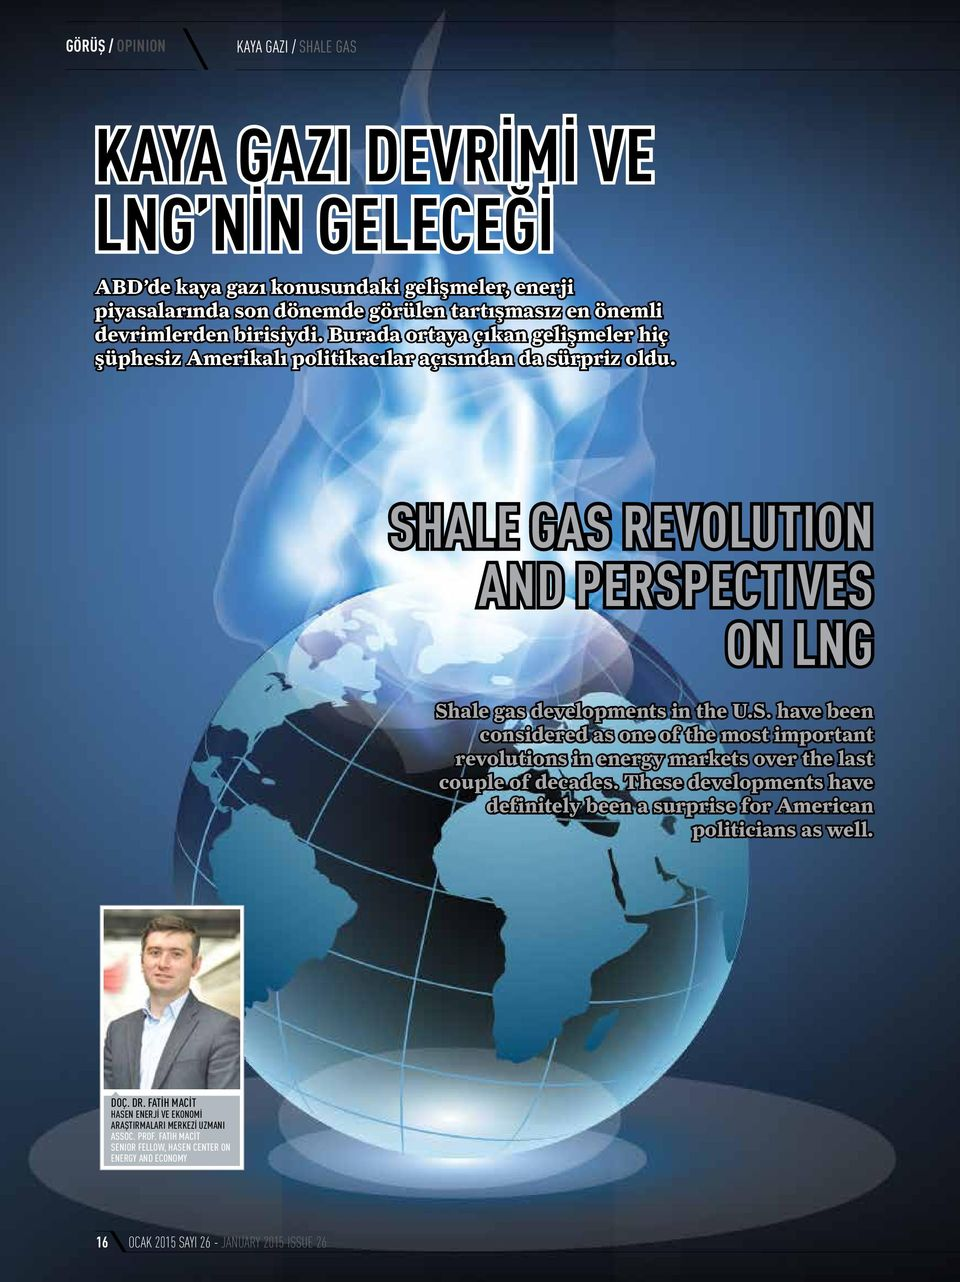 ALE GAS REVOLUTION AND PERSPECTIVES ON LNG Shale gas developments in the U.S. have been considered as one of the most important revolutions in energy markets over the last couple of decades.